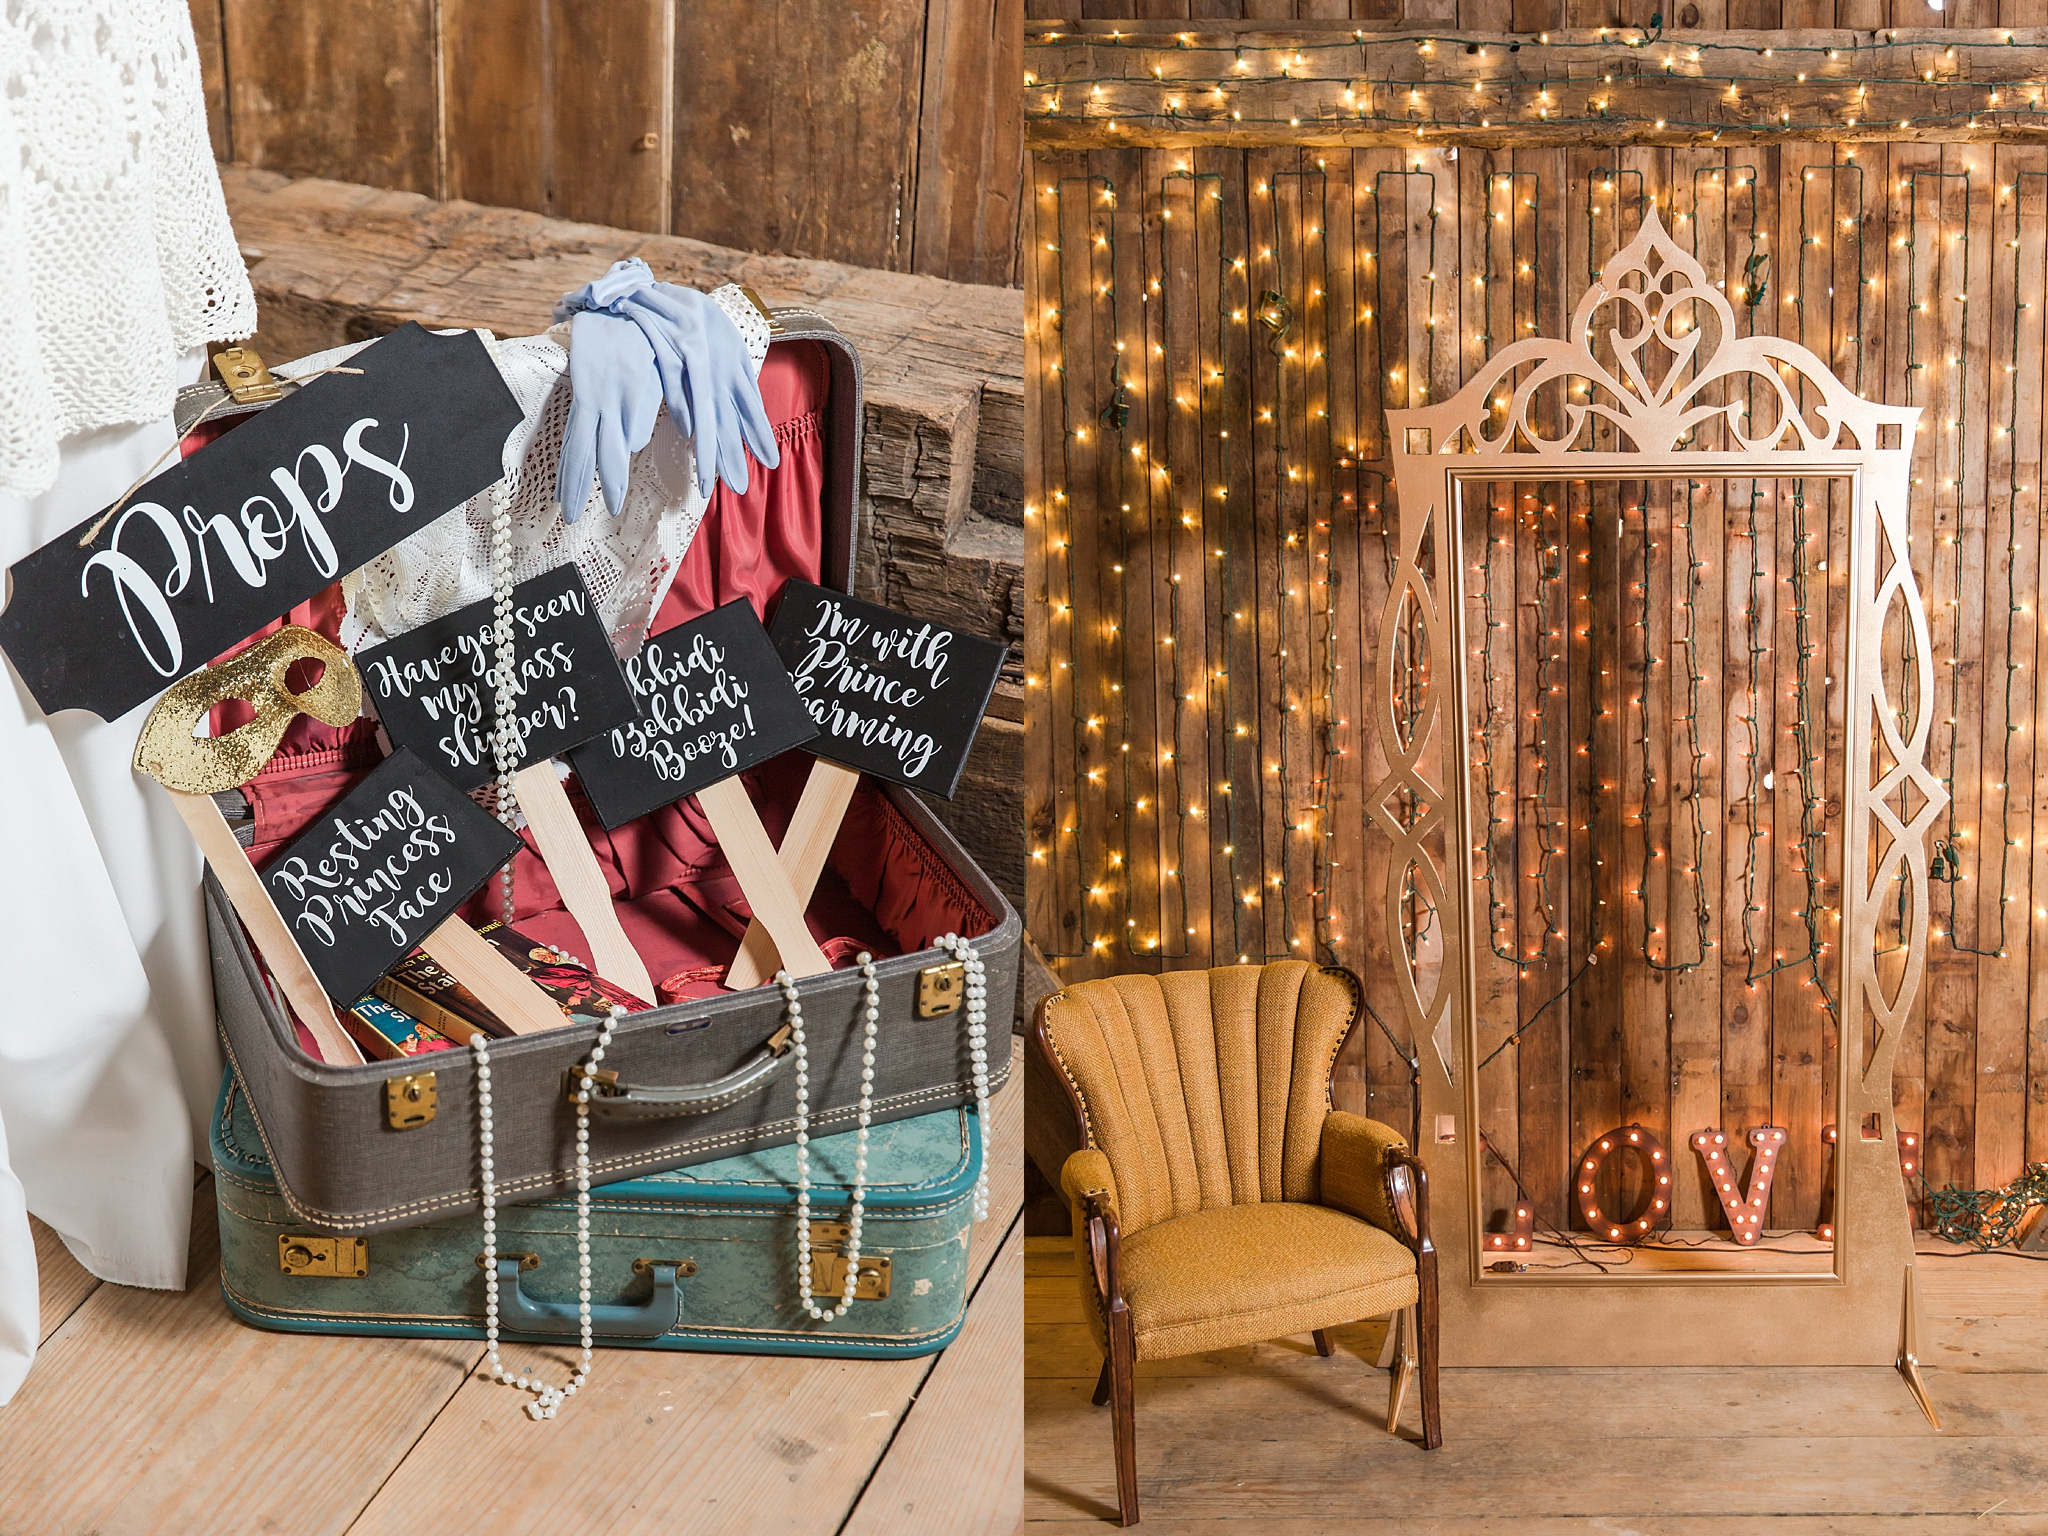 rustic-whimsical-wedding-photos-the-vale-royal-barn-in-fenton-michigan-by-courtney-carolyn-photography_0088.jpg